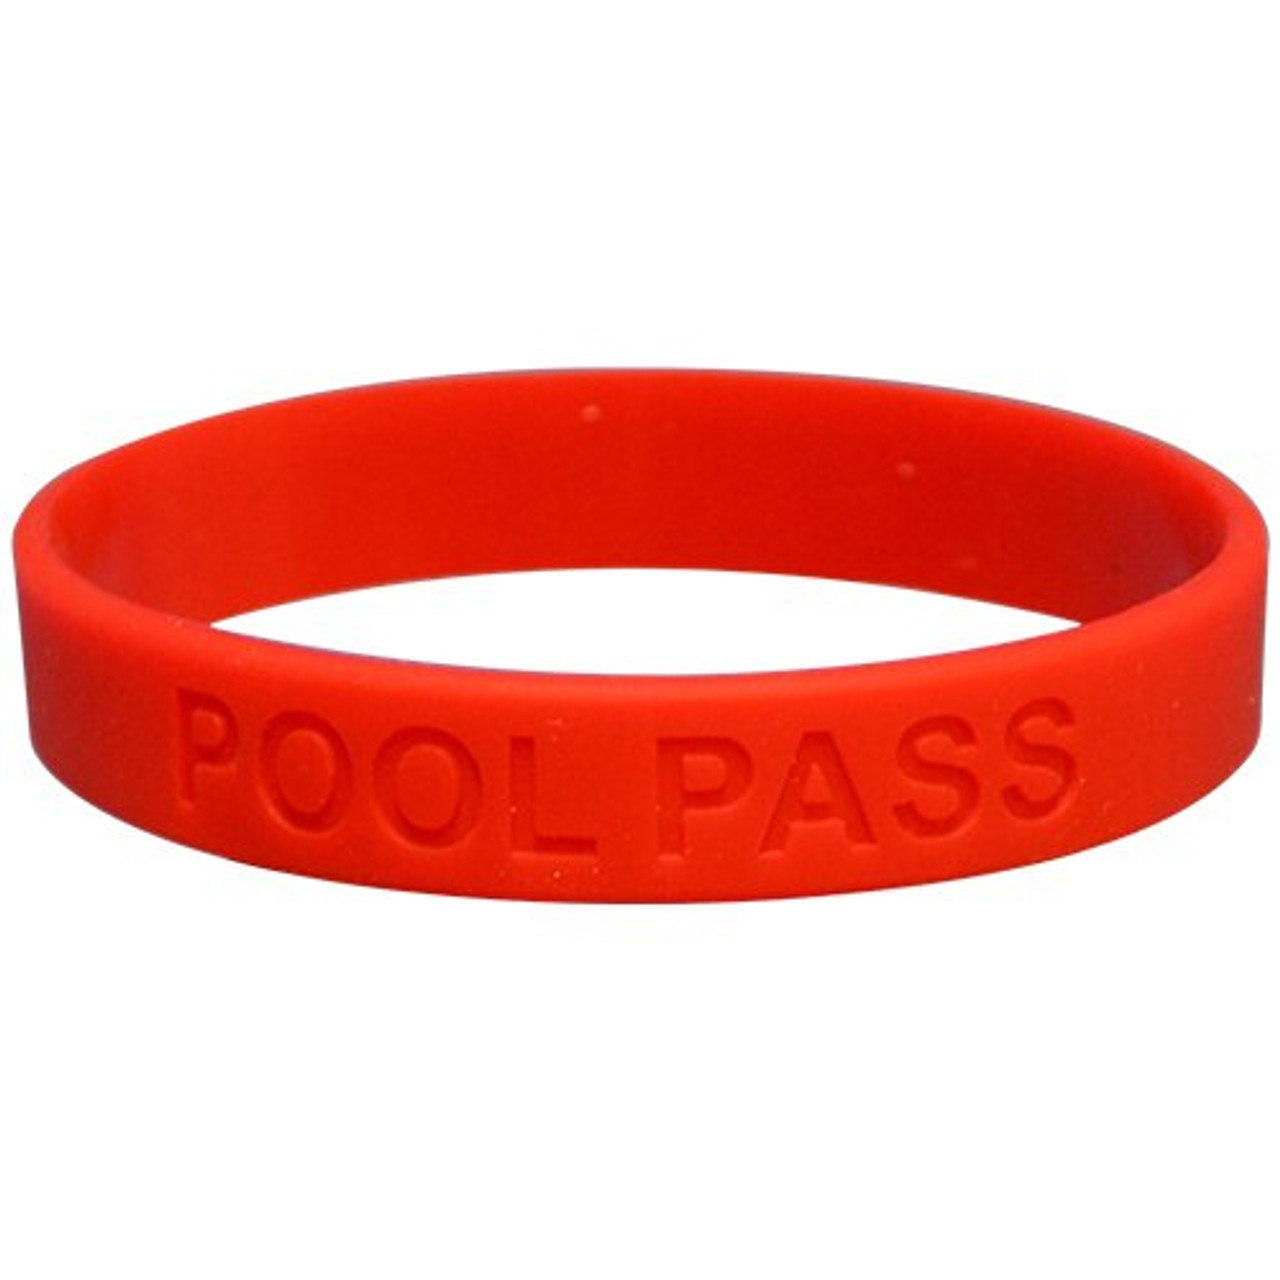 Adult Silicone Pool Pass (Red)